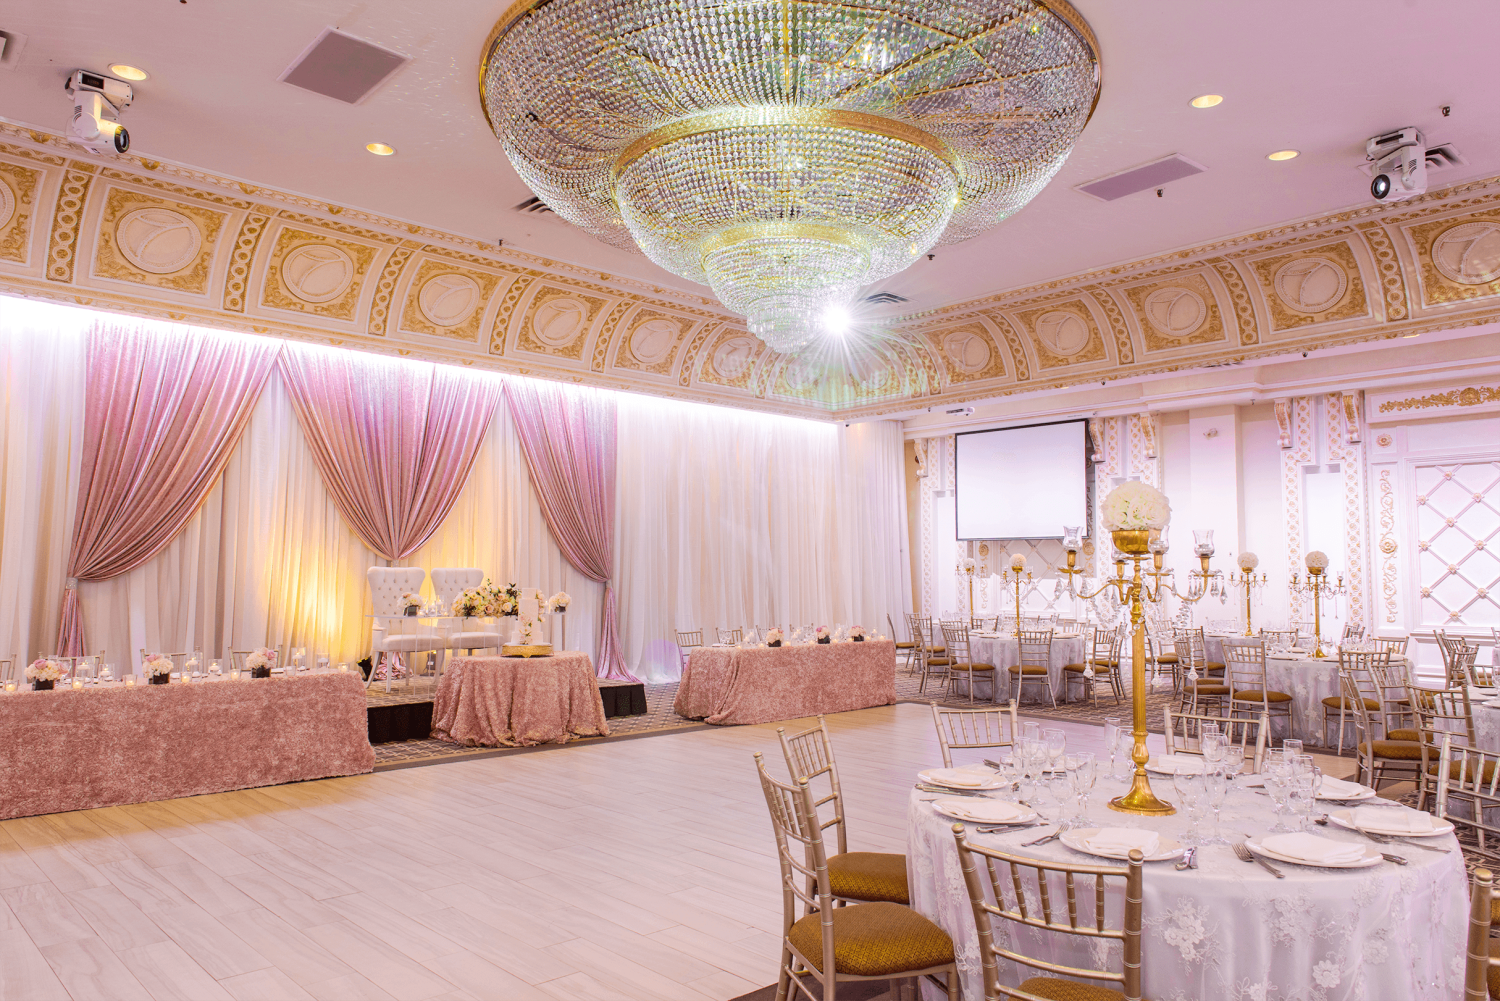 The Queen Victoria venue at Paradise Banquet Halls with a large dance floor, tables and chairs, and a head table.